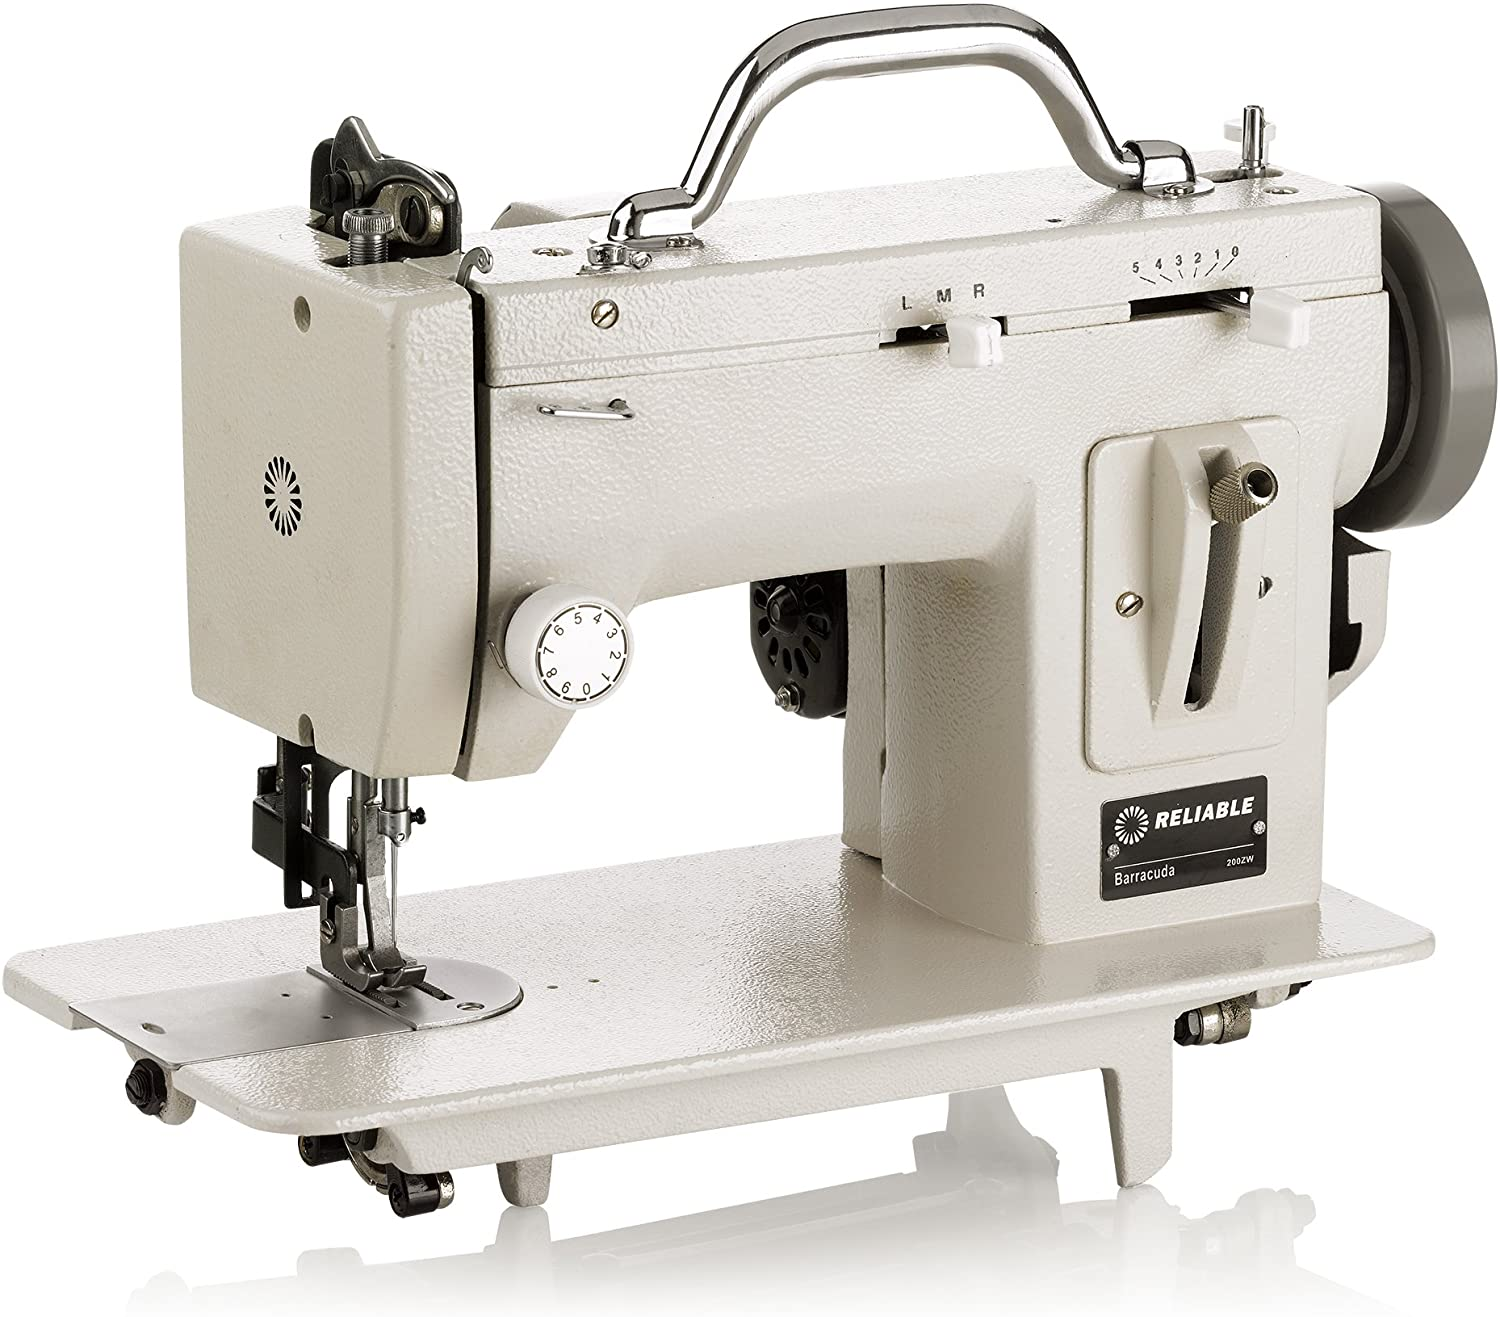 Reliable Barracuda 200ZW Zig-Zag Sewing Machine